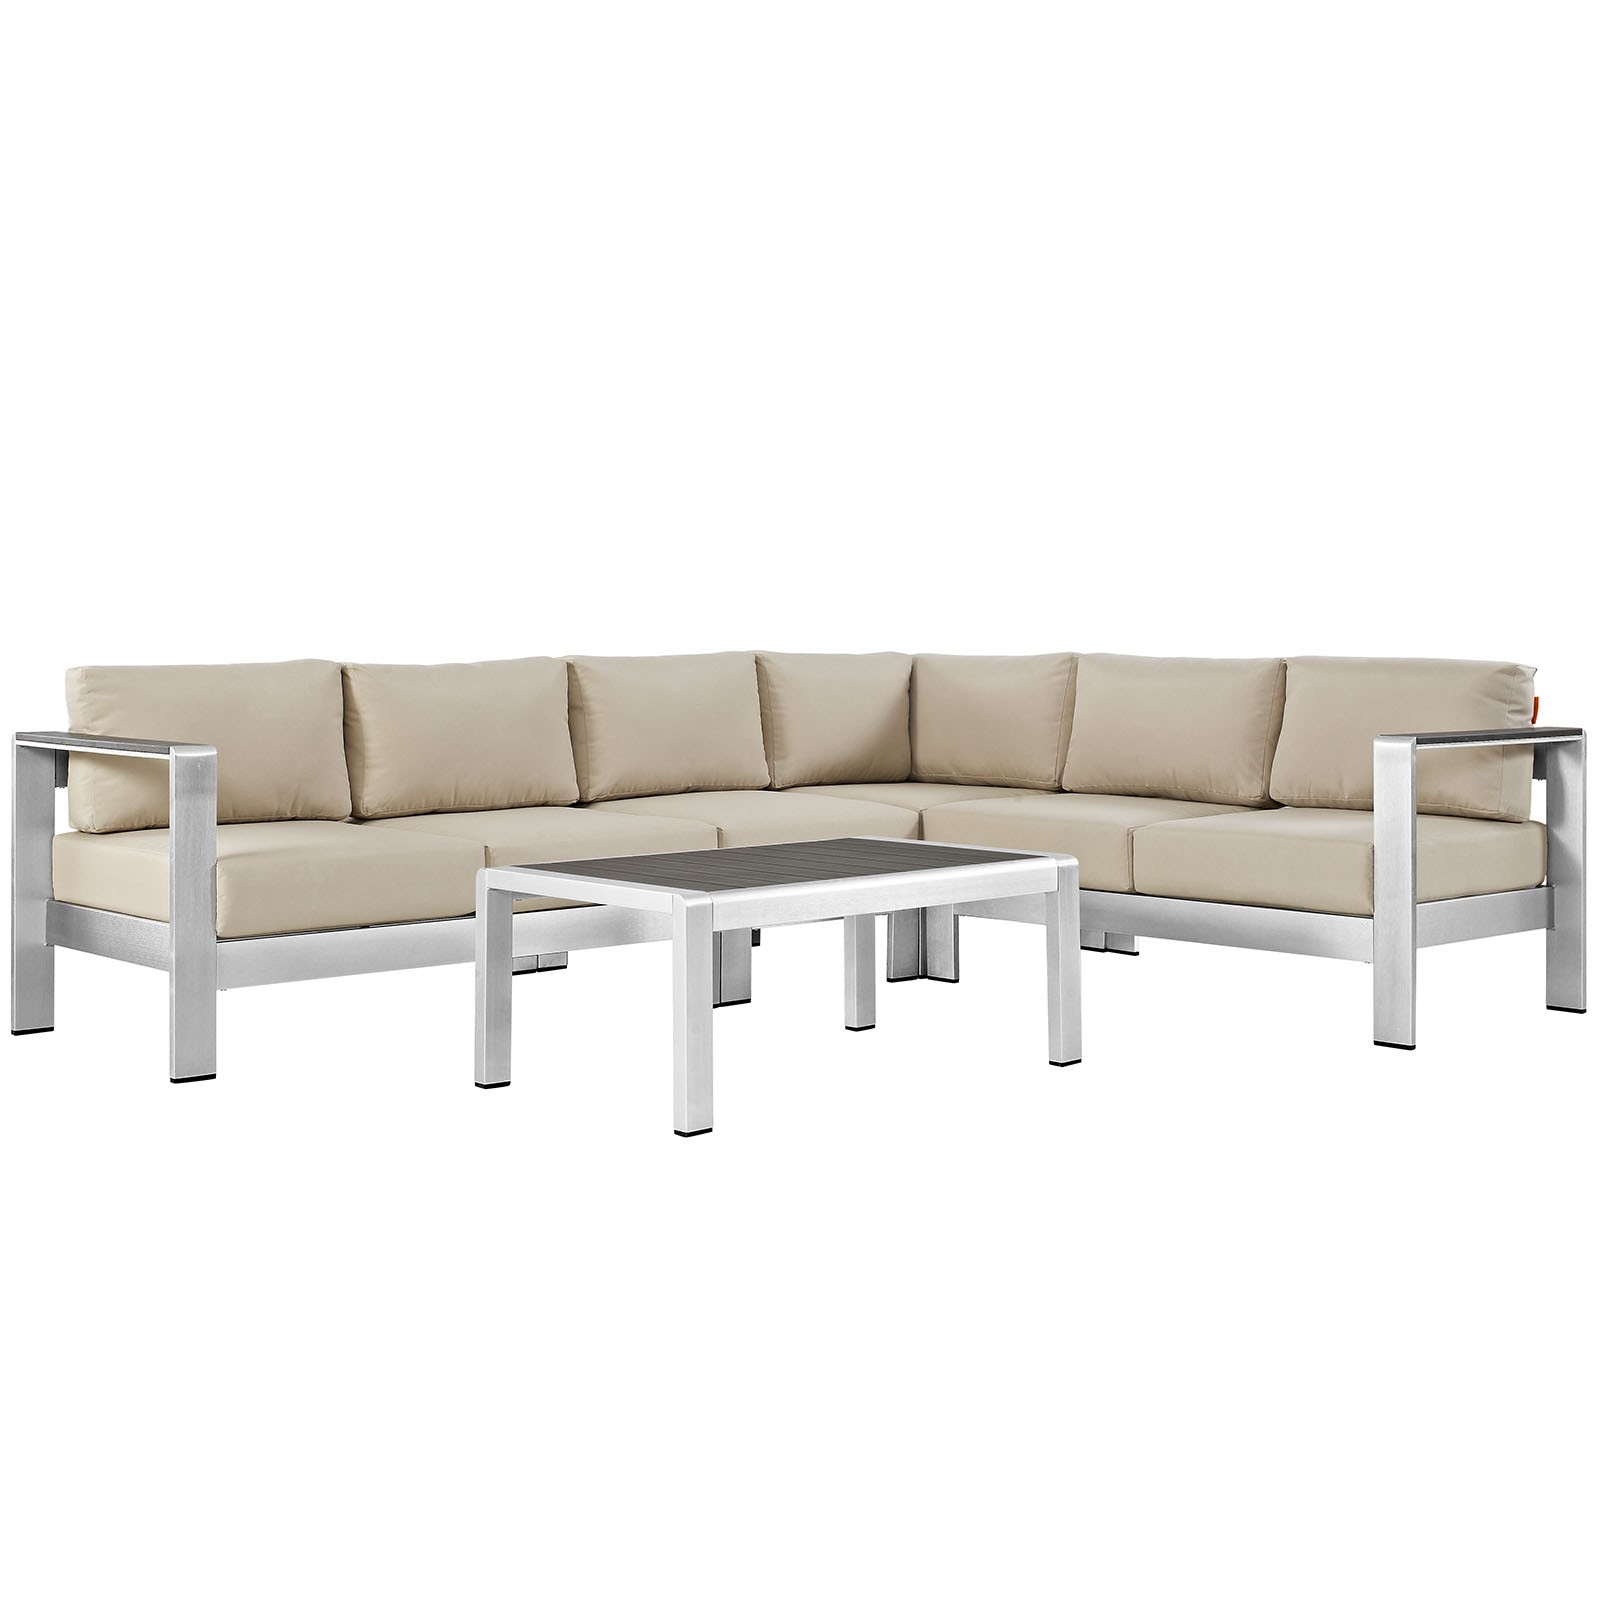 Shore 5 Piece Outdoor Patio Aluminum Sectional Sofa Set